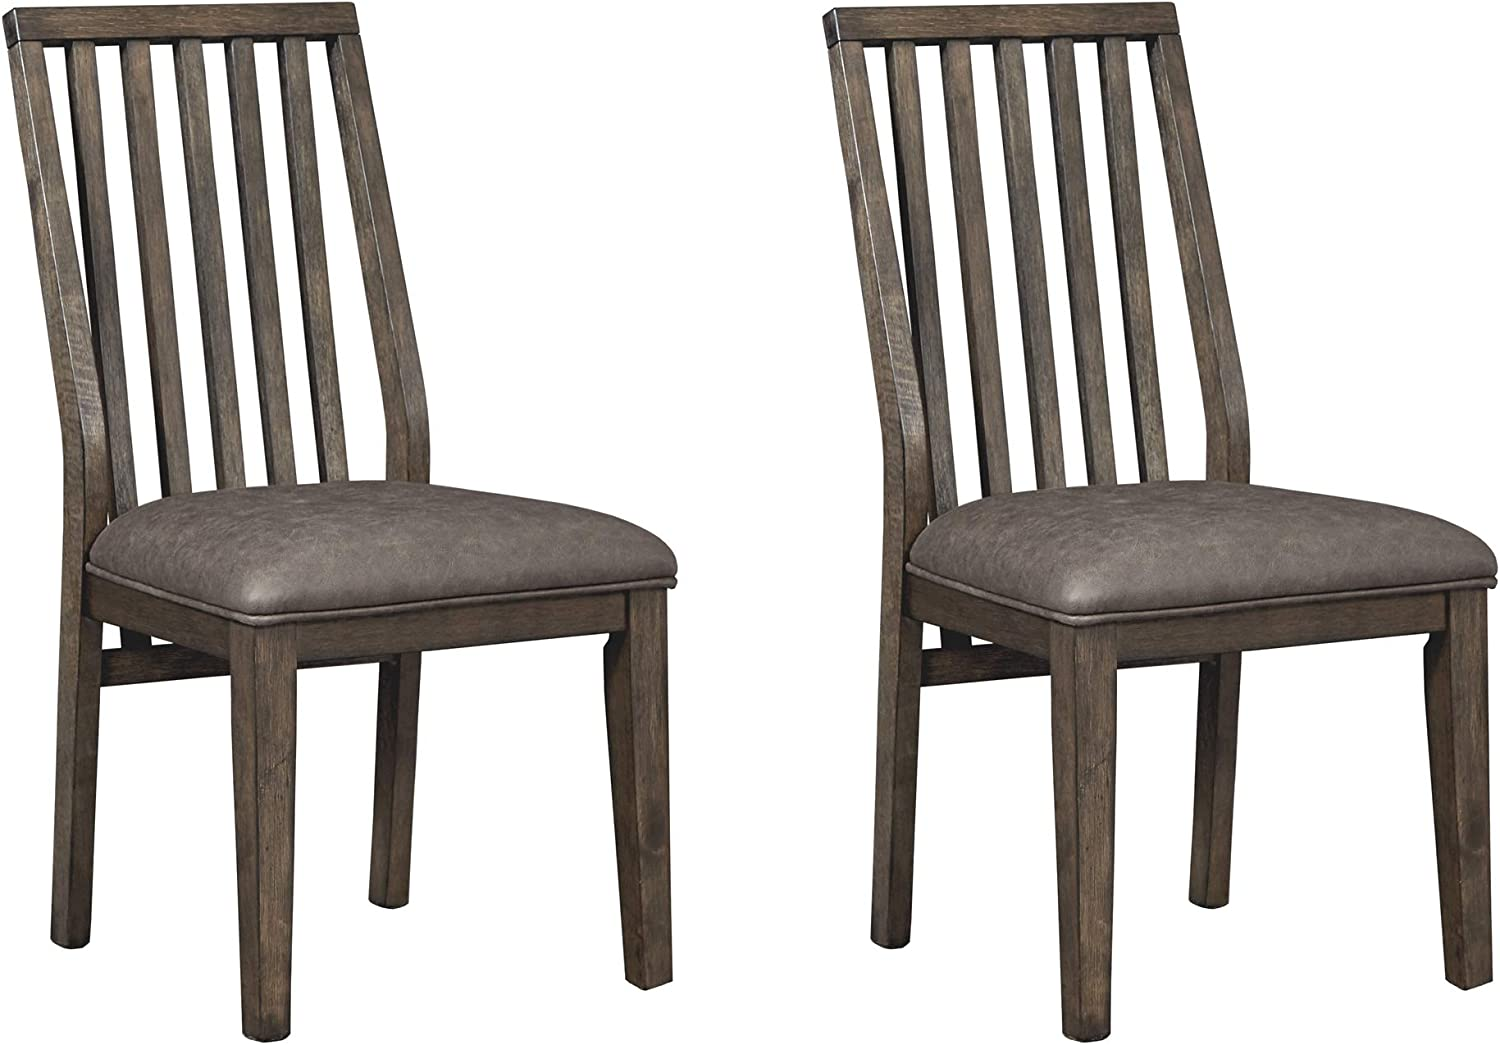 Signature Design by Ashley 2021 model Kisper 35% OFF Dining Brown Chair Room